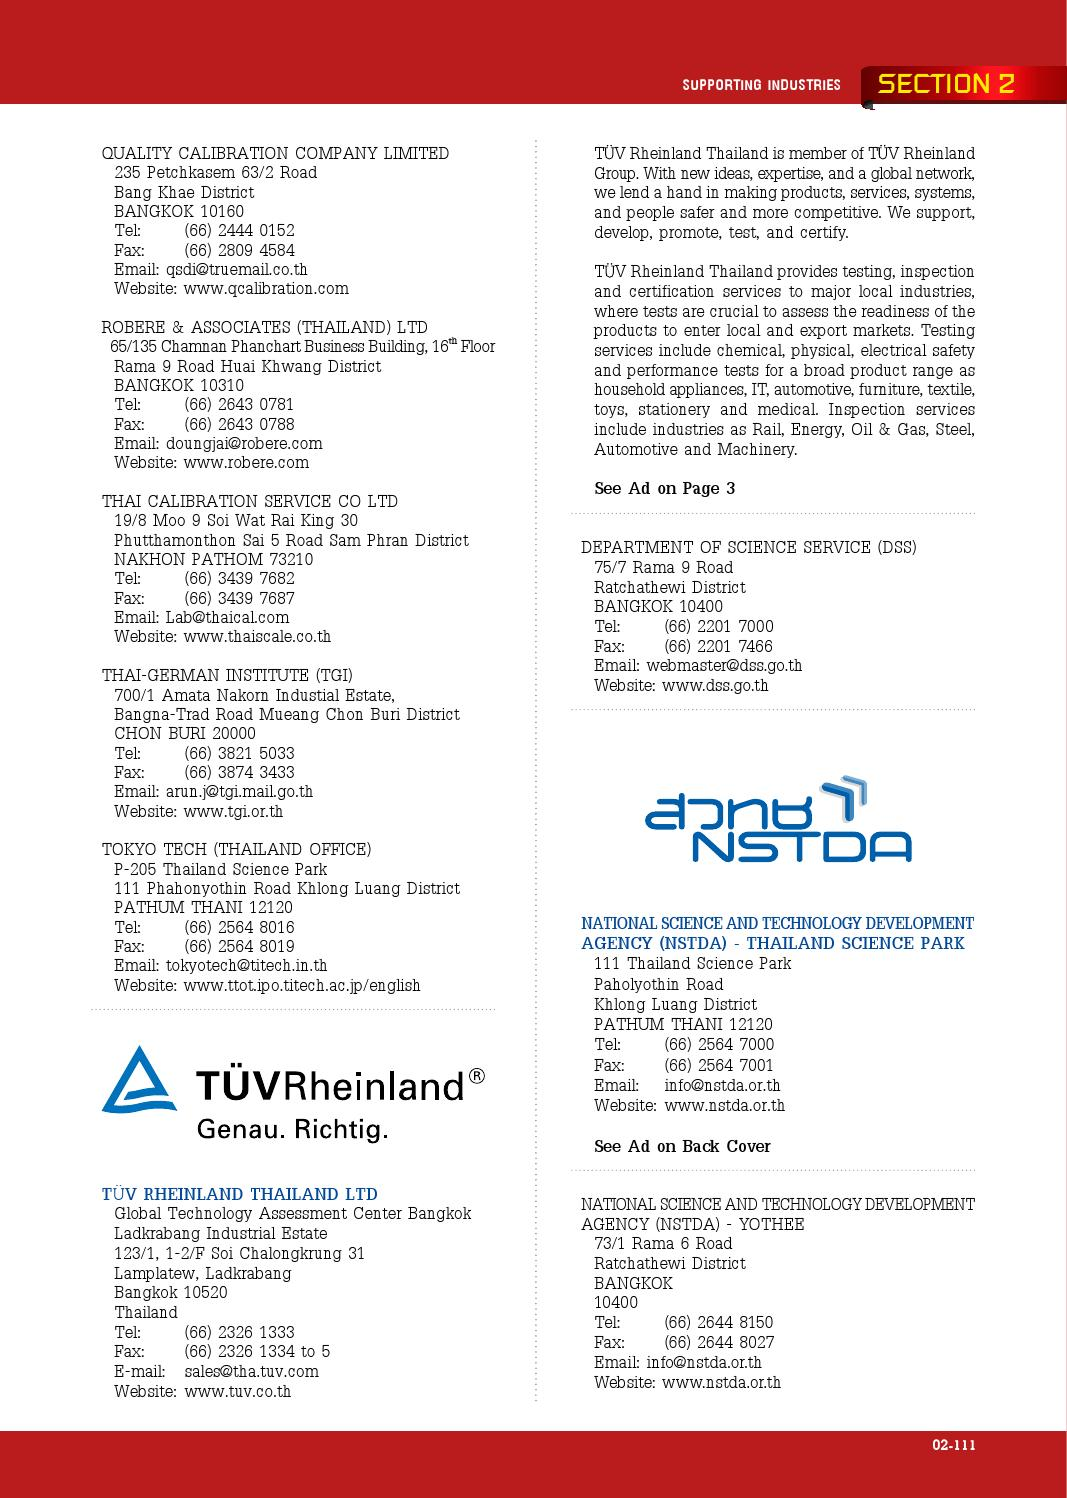 Directory of Thailand Auto Parts Testing and Testing